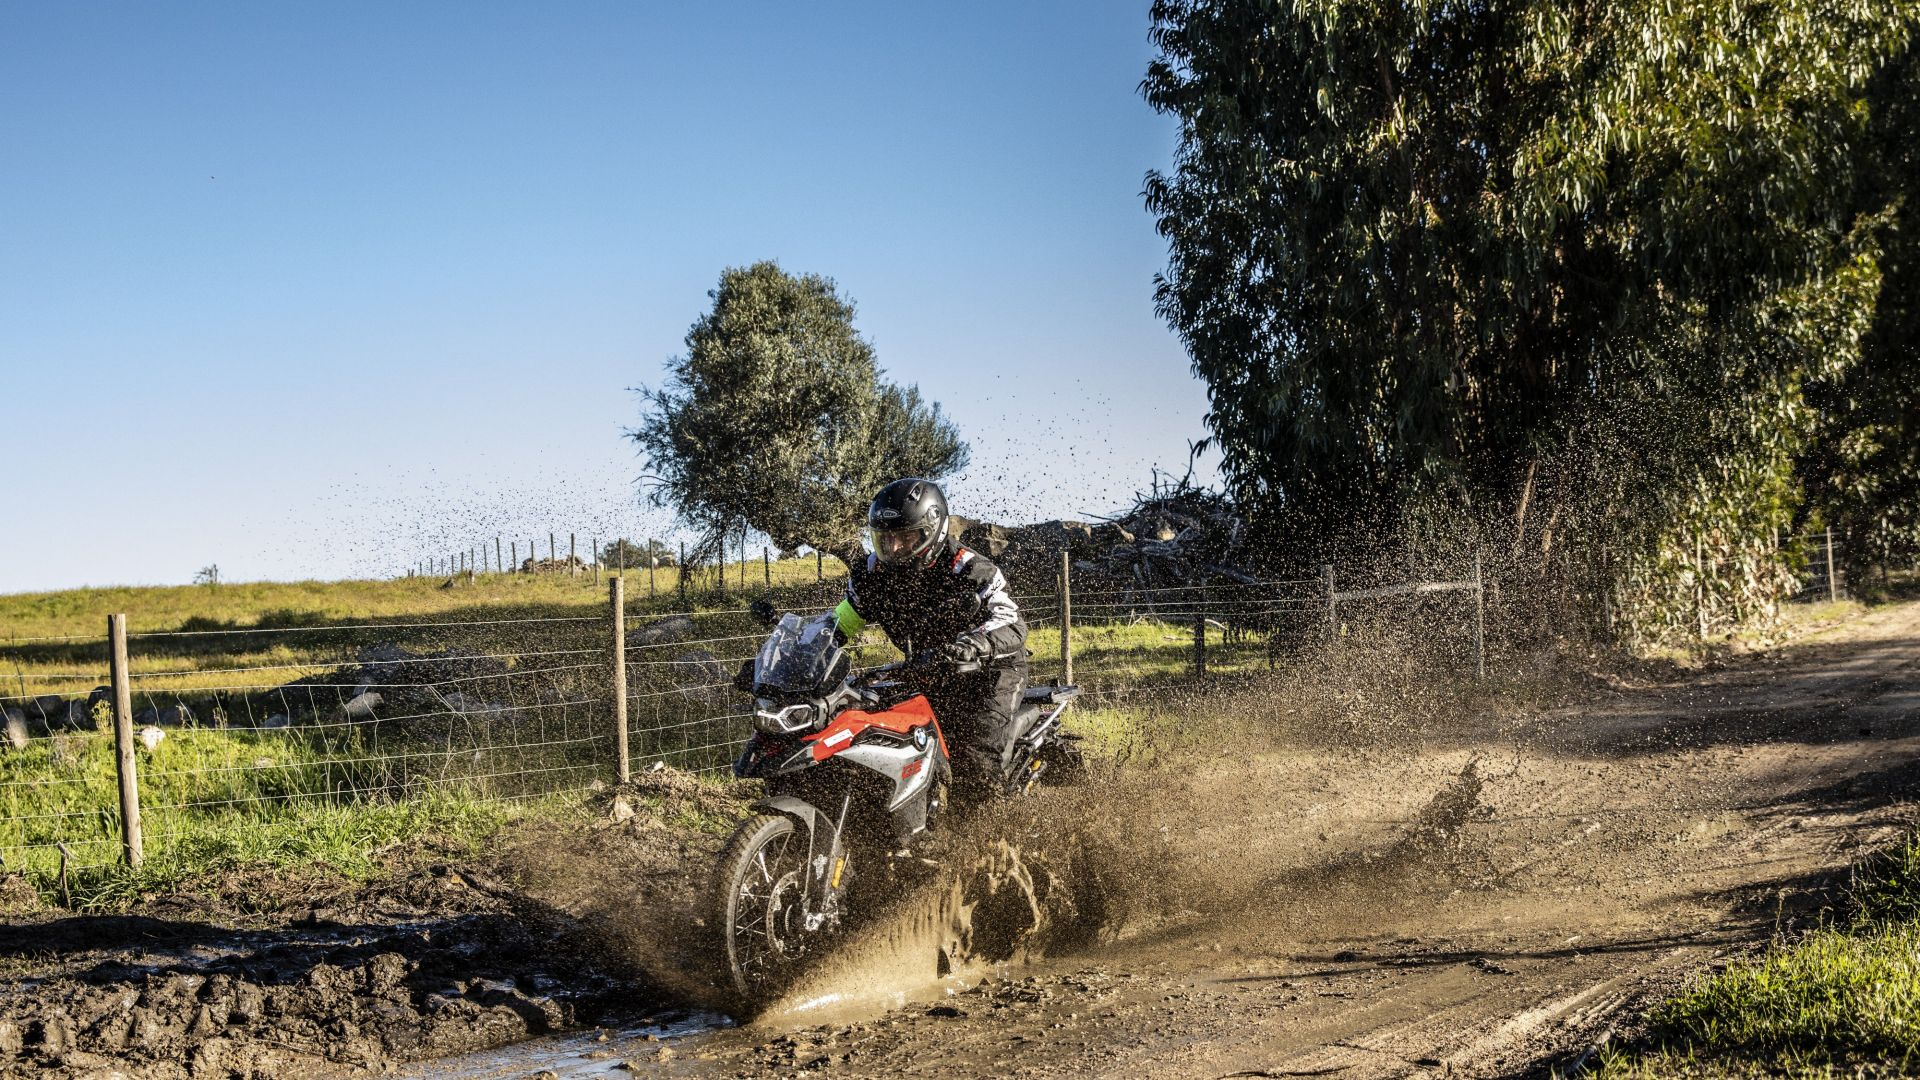 Michelin Anakee Adventure f 850 gs